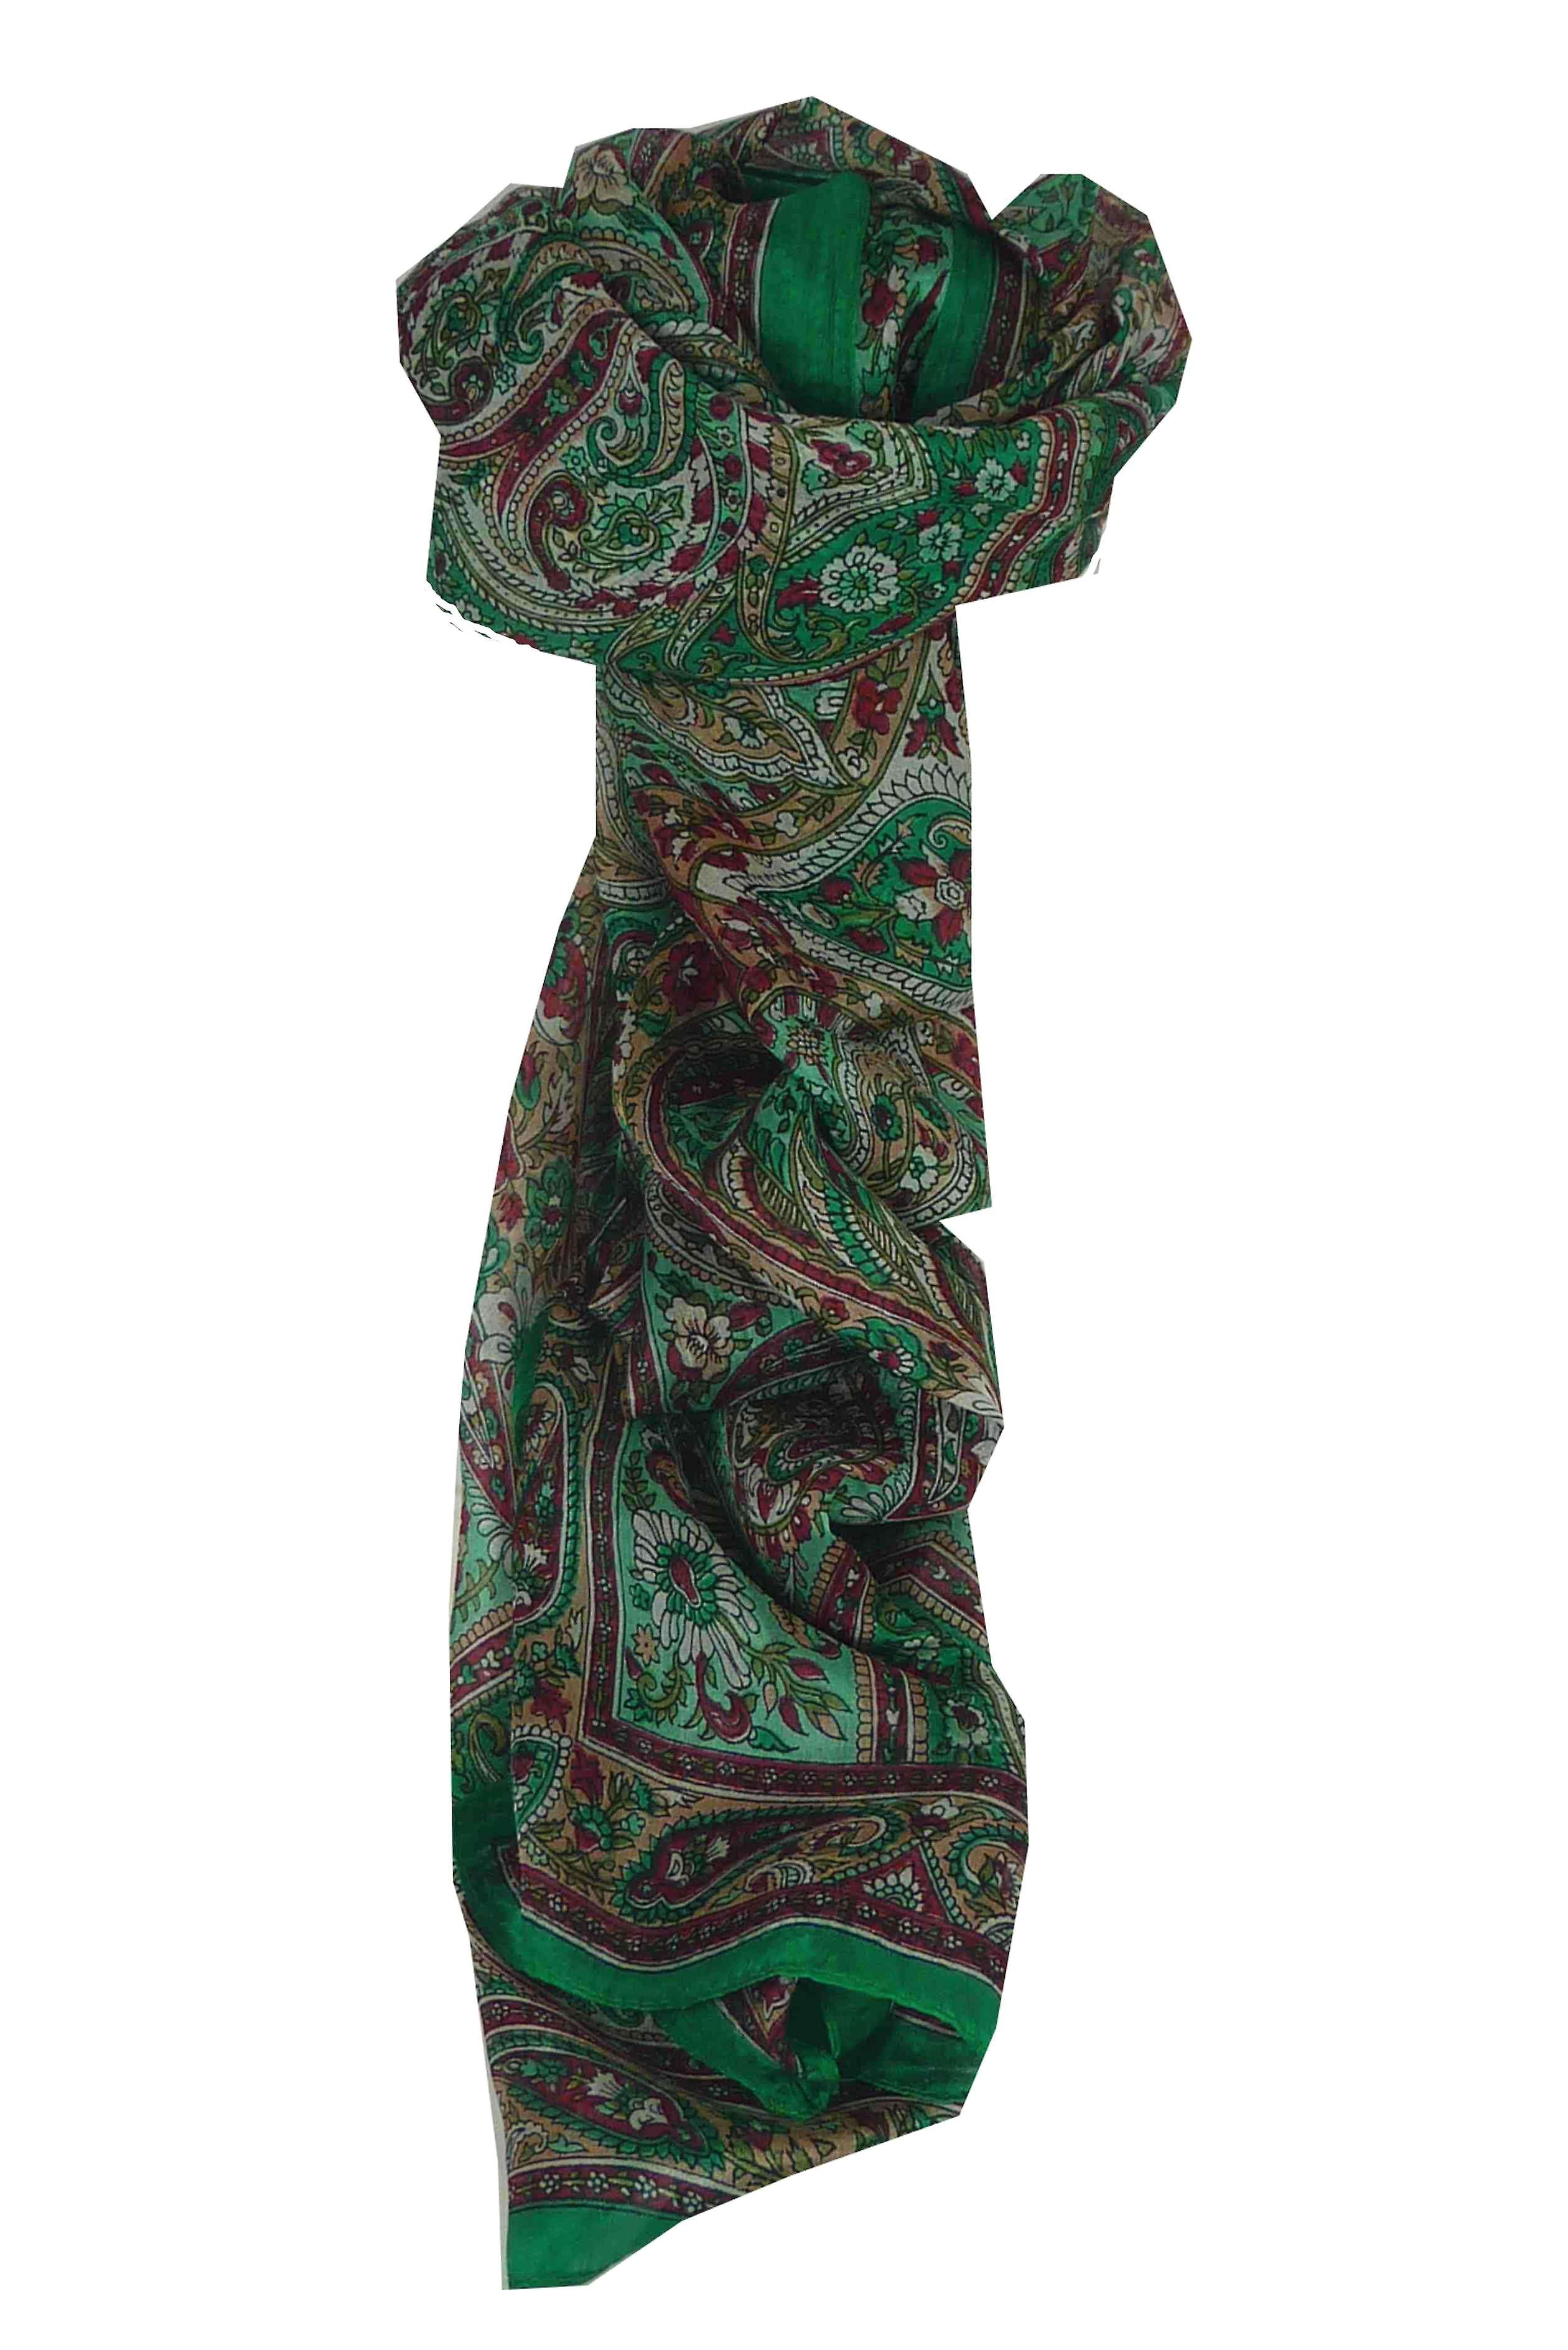 Mulberry Silk Traditional Long Scarf Diya Teal by Pashmina & Silk